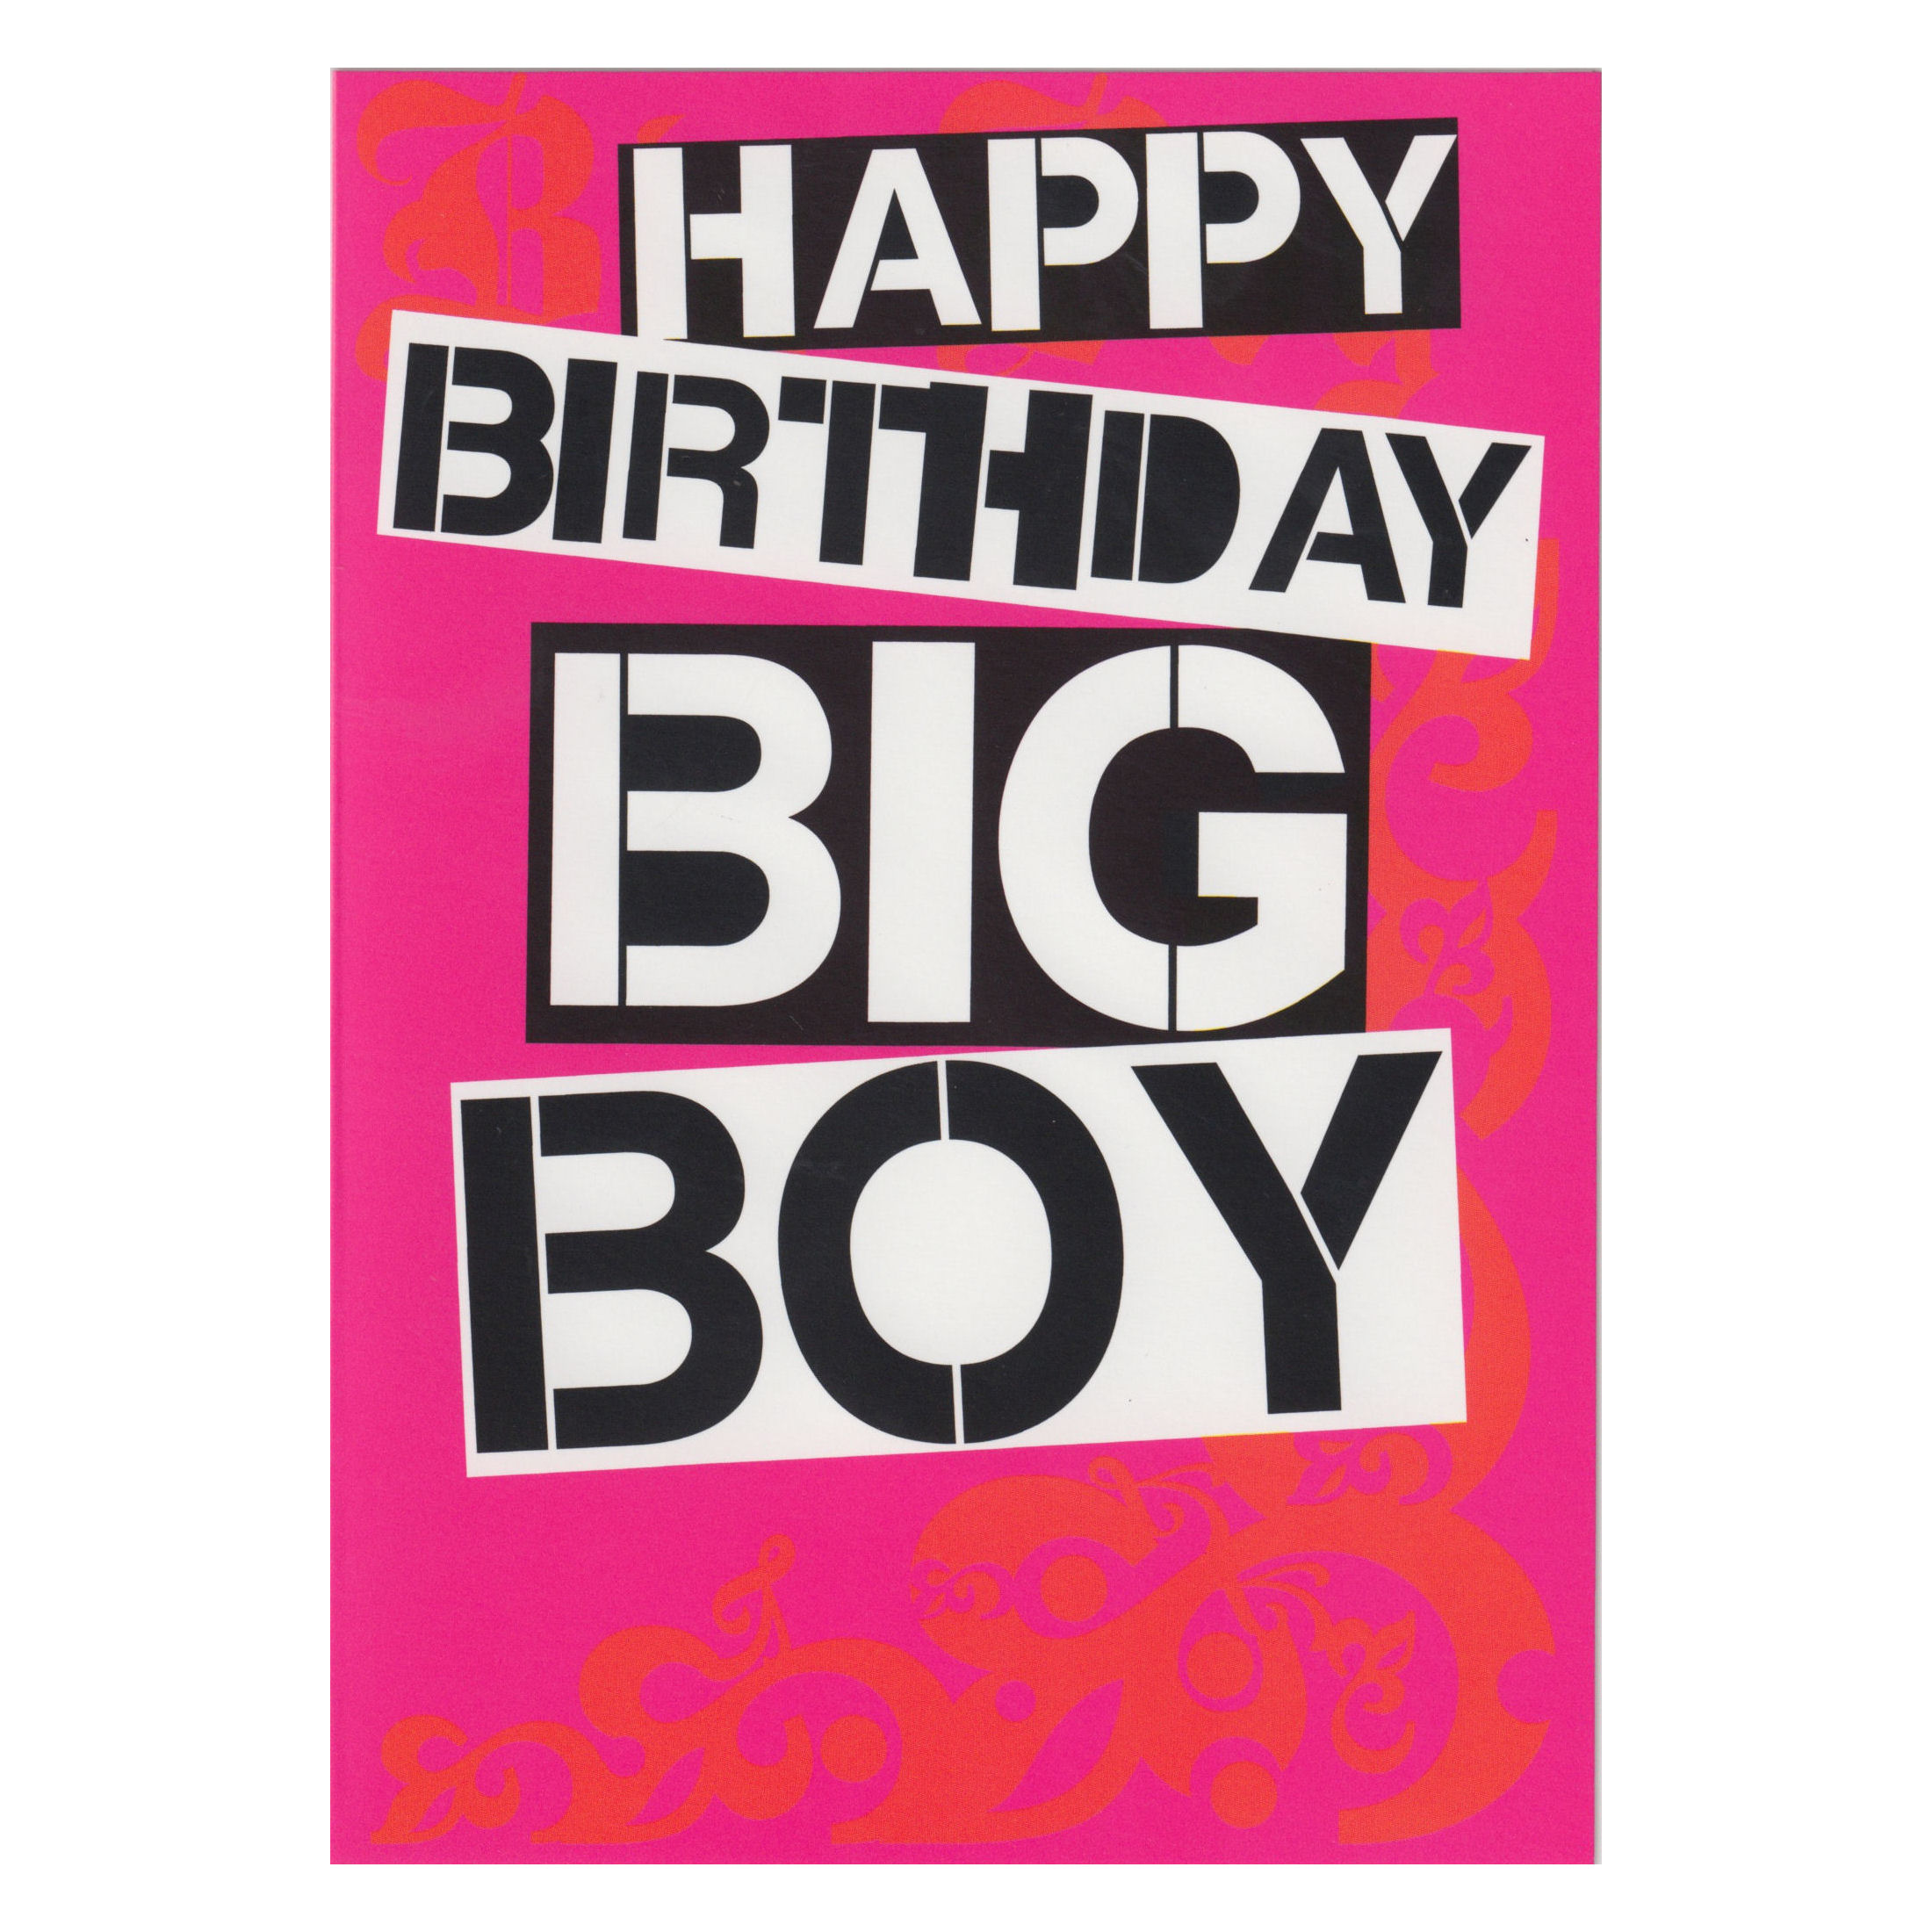 Happy birthday big boy greetings card birthday kitschagogo happy birthday big boy greetings card kristyandbryce Images